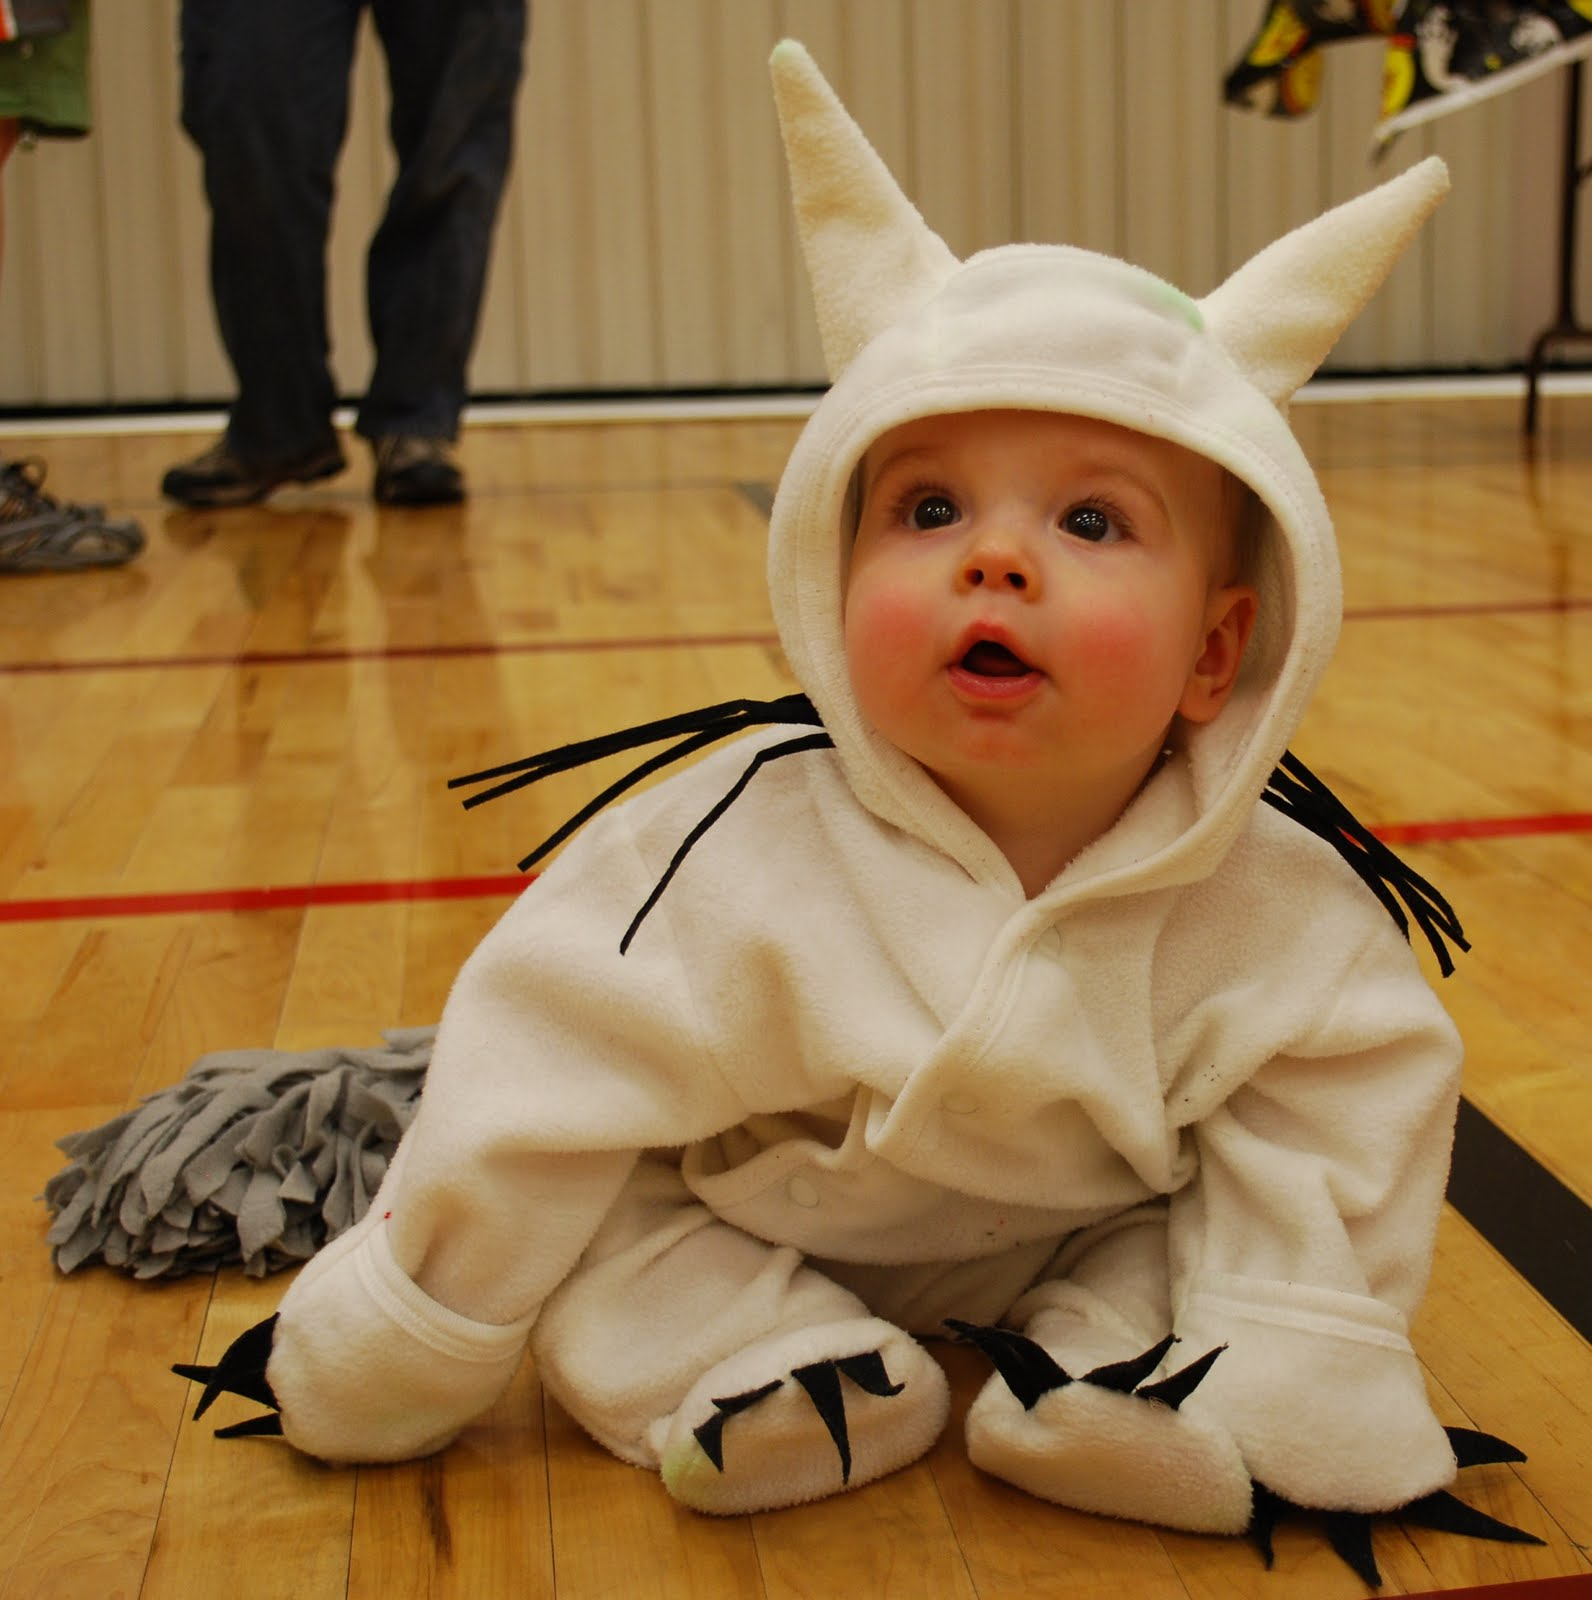 epbot: and now, a dose of halloween cute